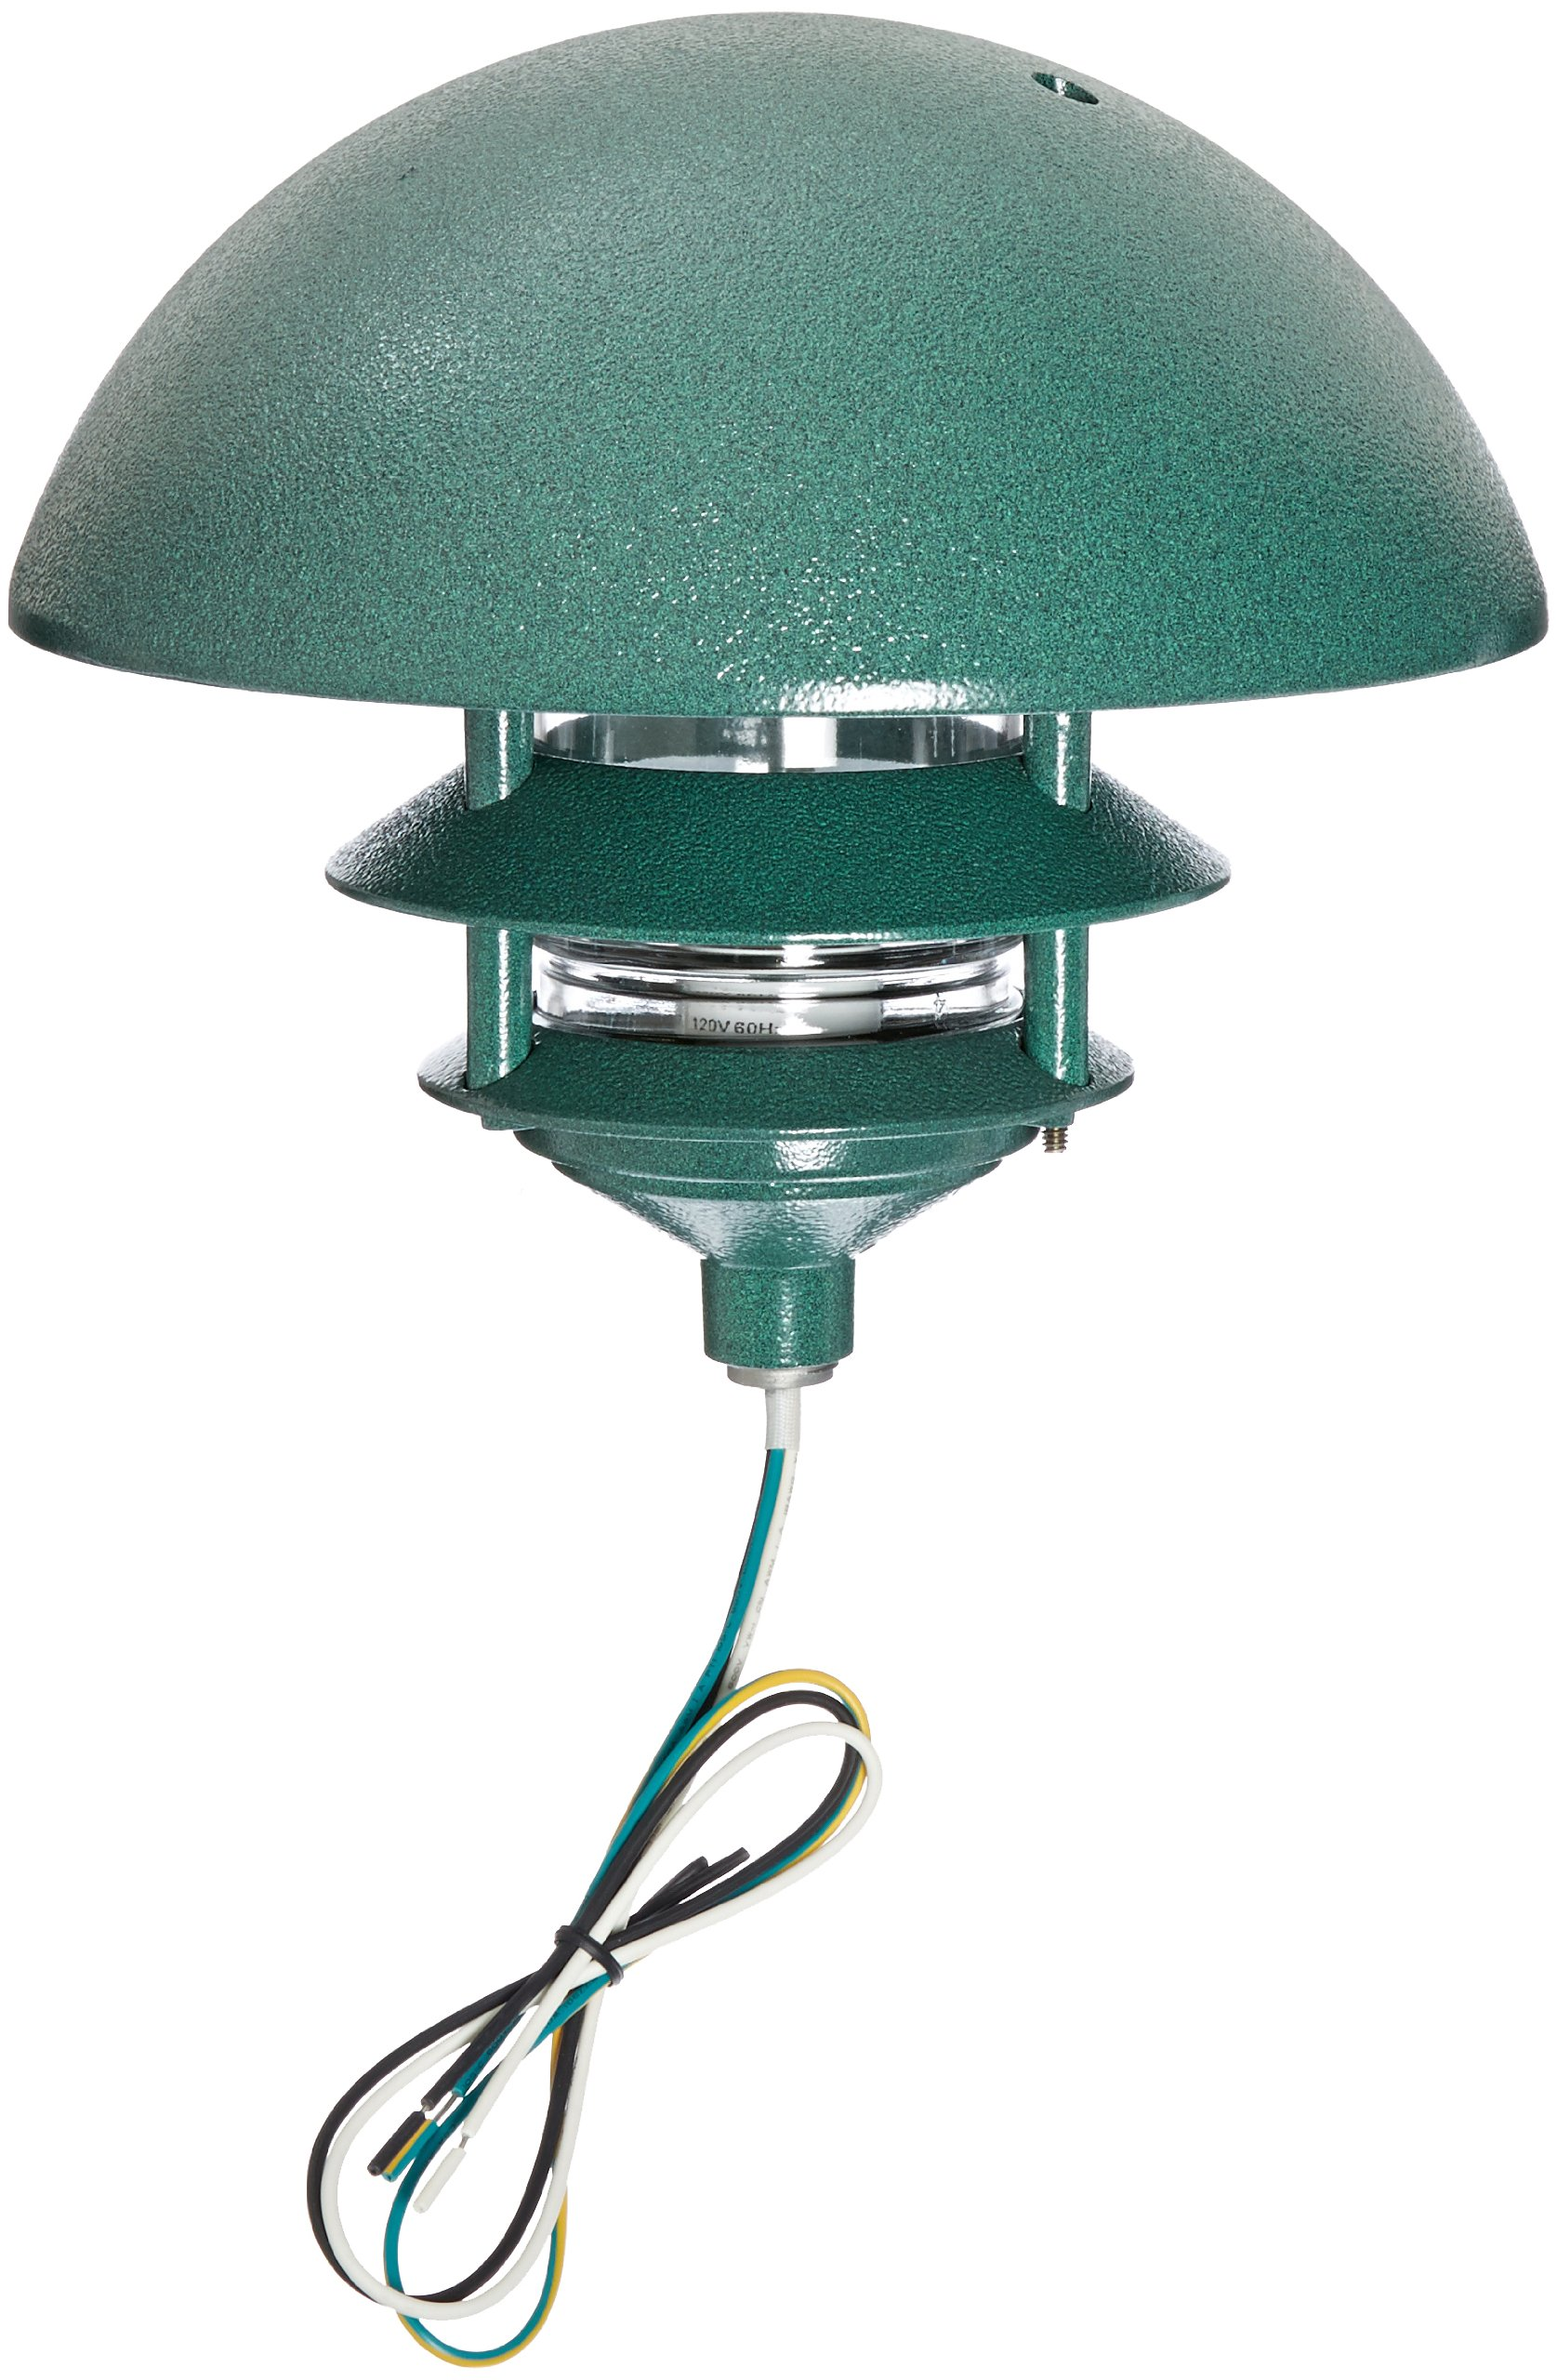 RAB Lighting LLD3VG Incandescent 3 Tier Lawn Light with Dome Cap, 75W Power, 1220 Lumens, 120VAC, Verde Green by RAB Lighting